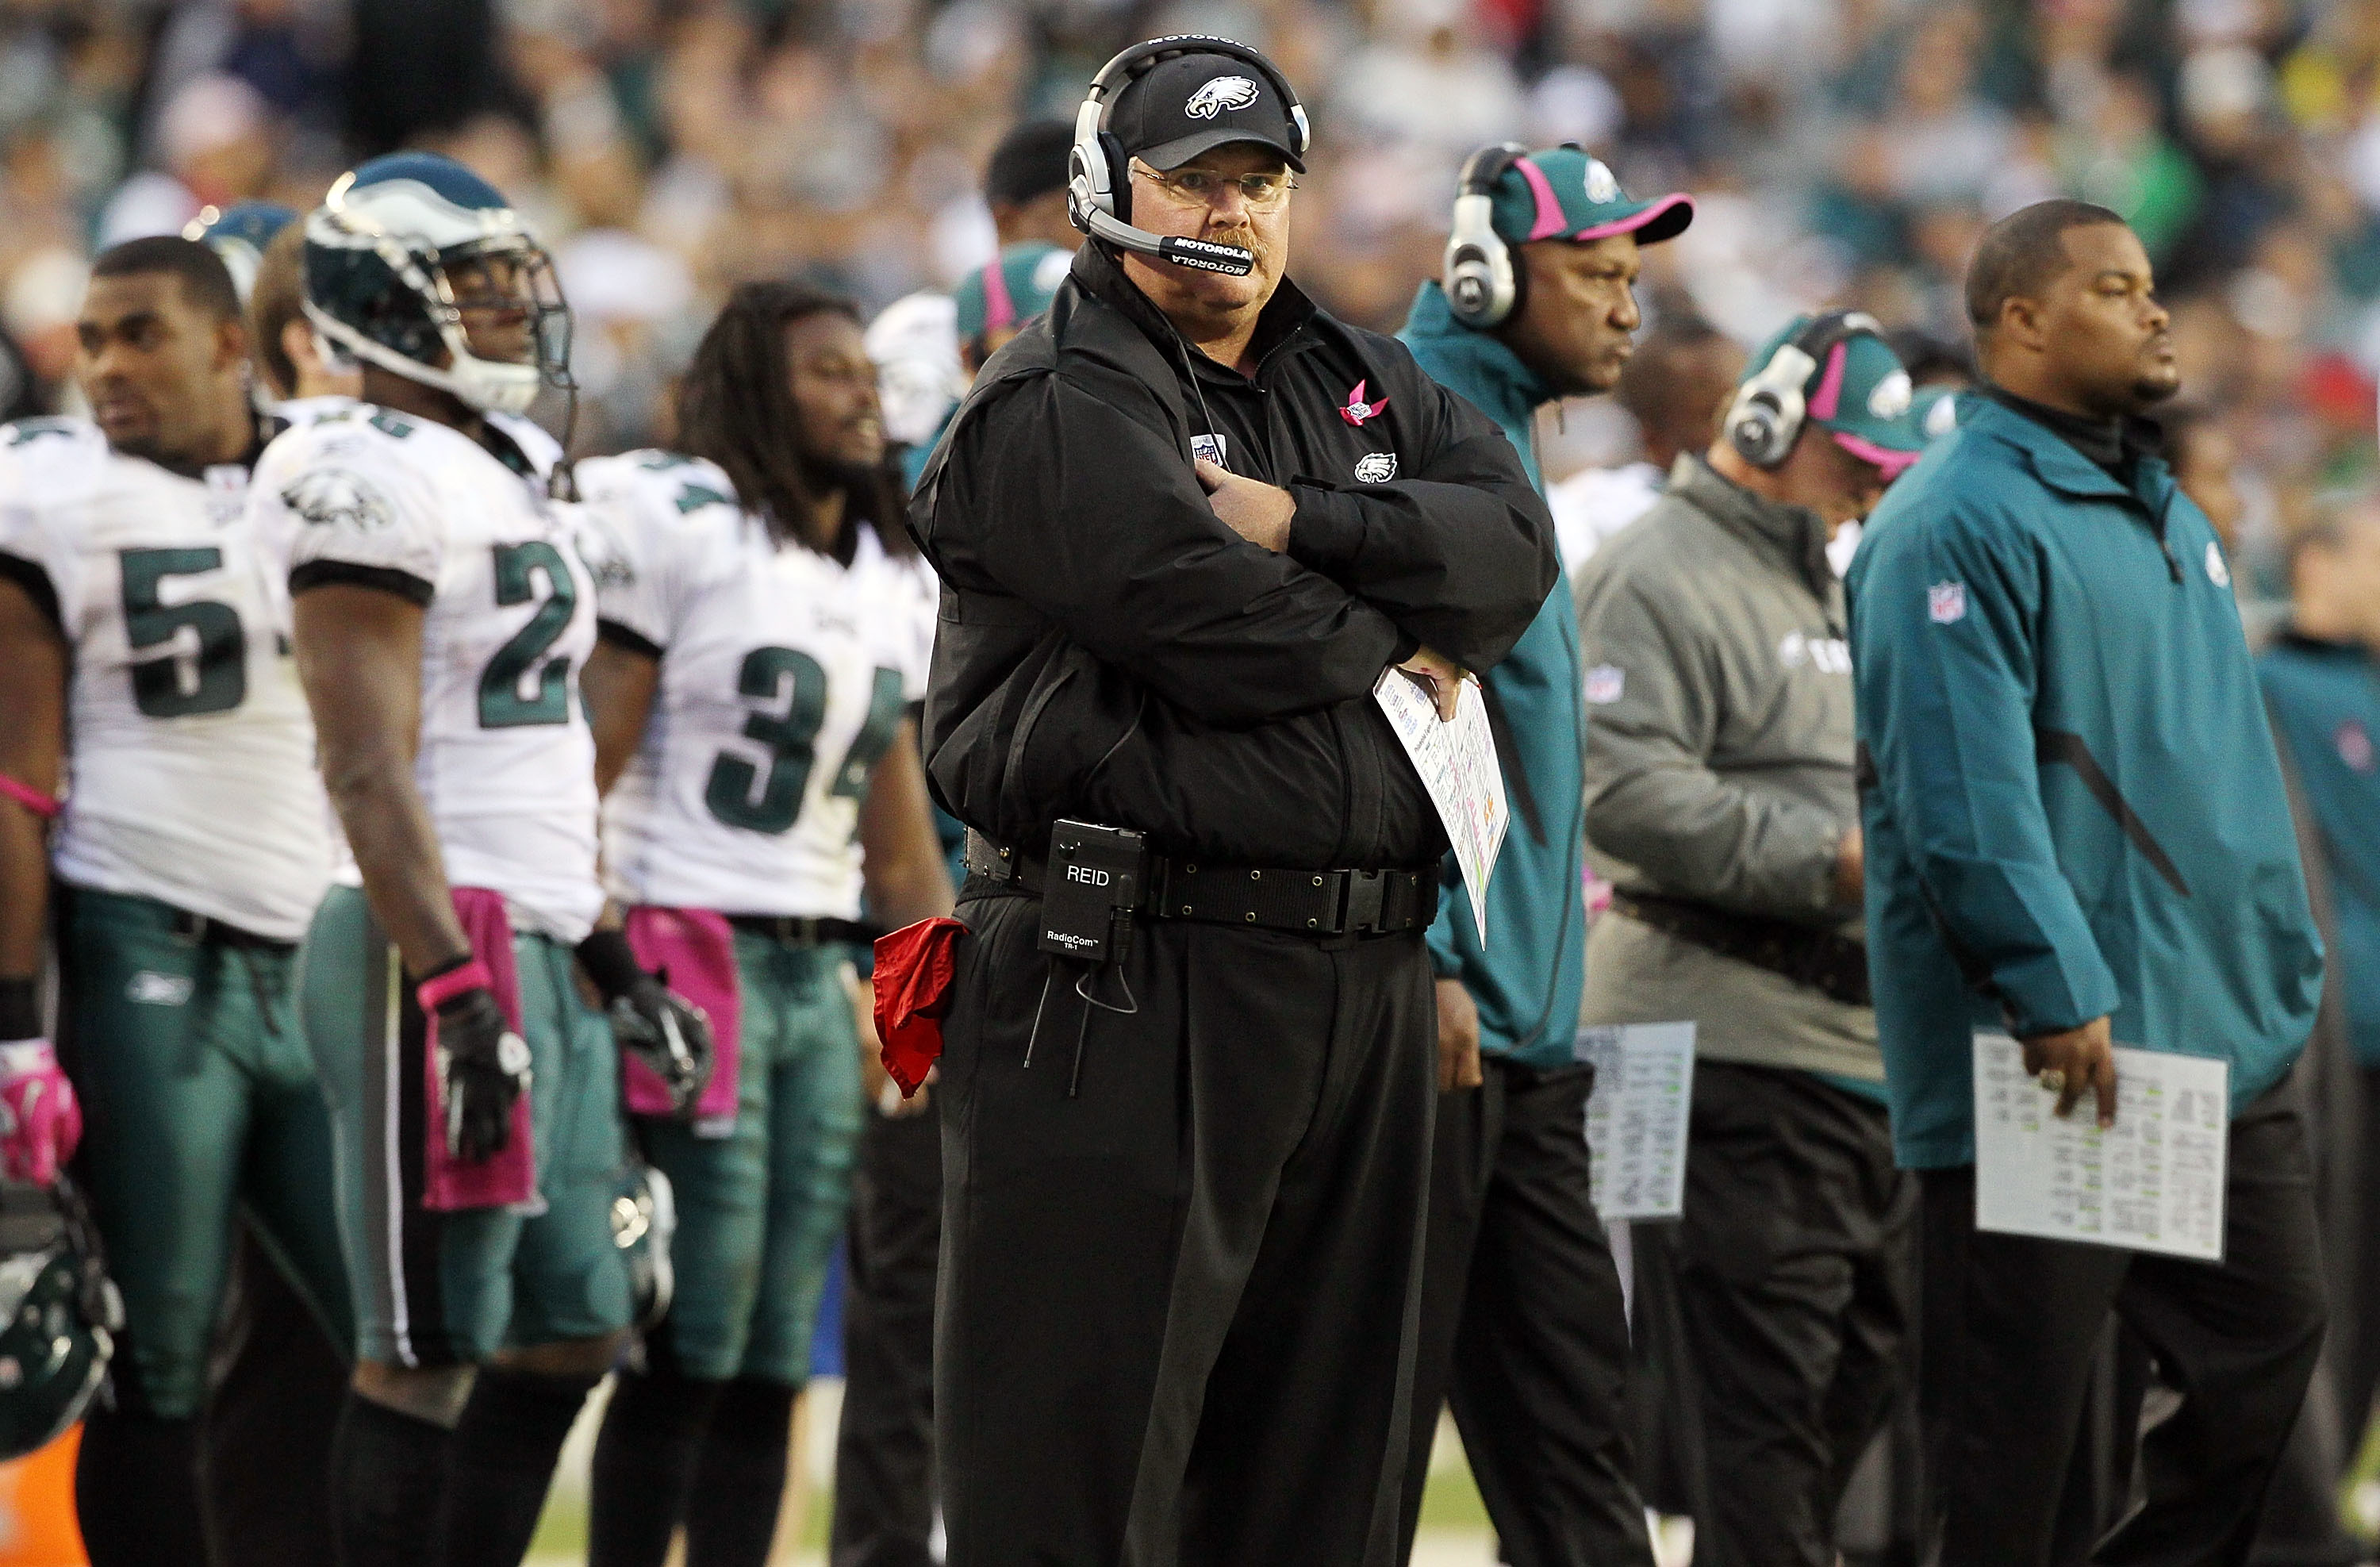 PHILADELPHIA - OCTOBER 03:  Head coach Andy Reid of the Philadelphia Eagles looks on against the Washington Redskins on October 3, 2010 at Lincoln Financial Field in Philadelphia, Pennsylvania. The Redskins defeated the Eagles 17-12.  (Photo by Jim McIsaa